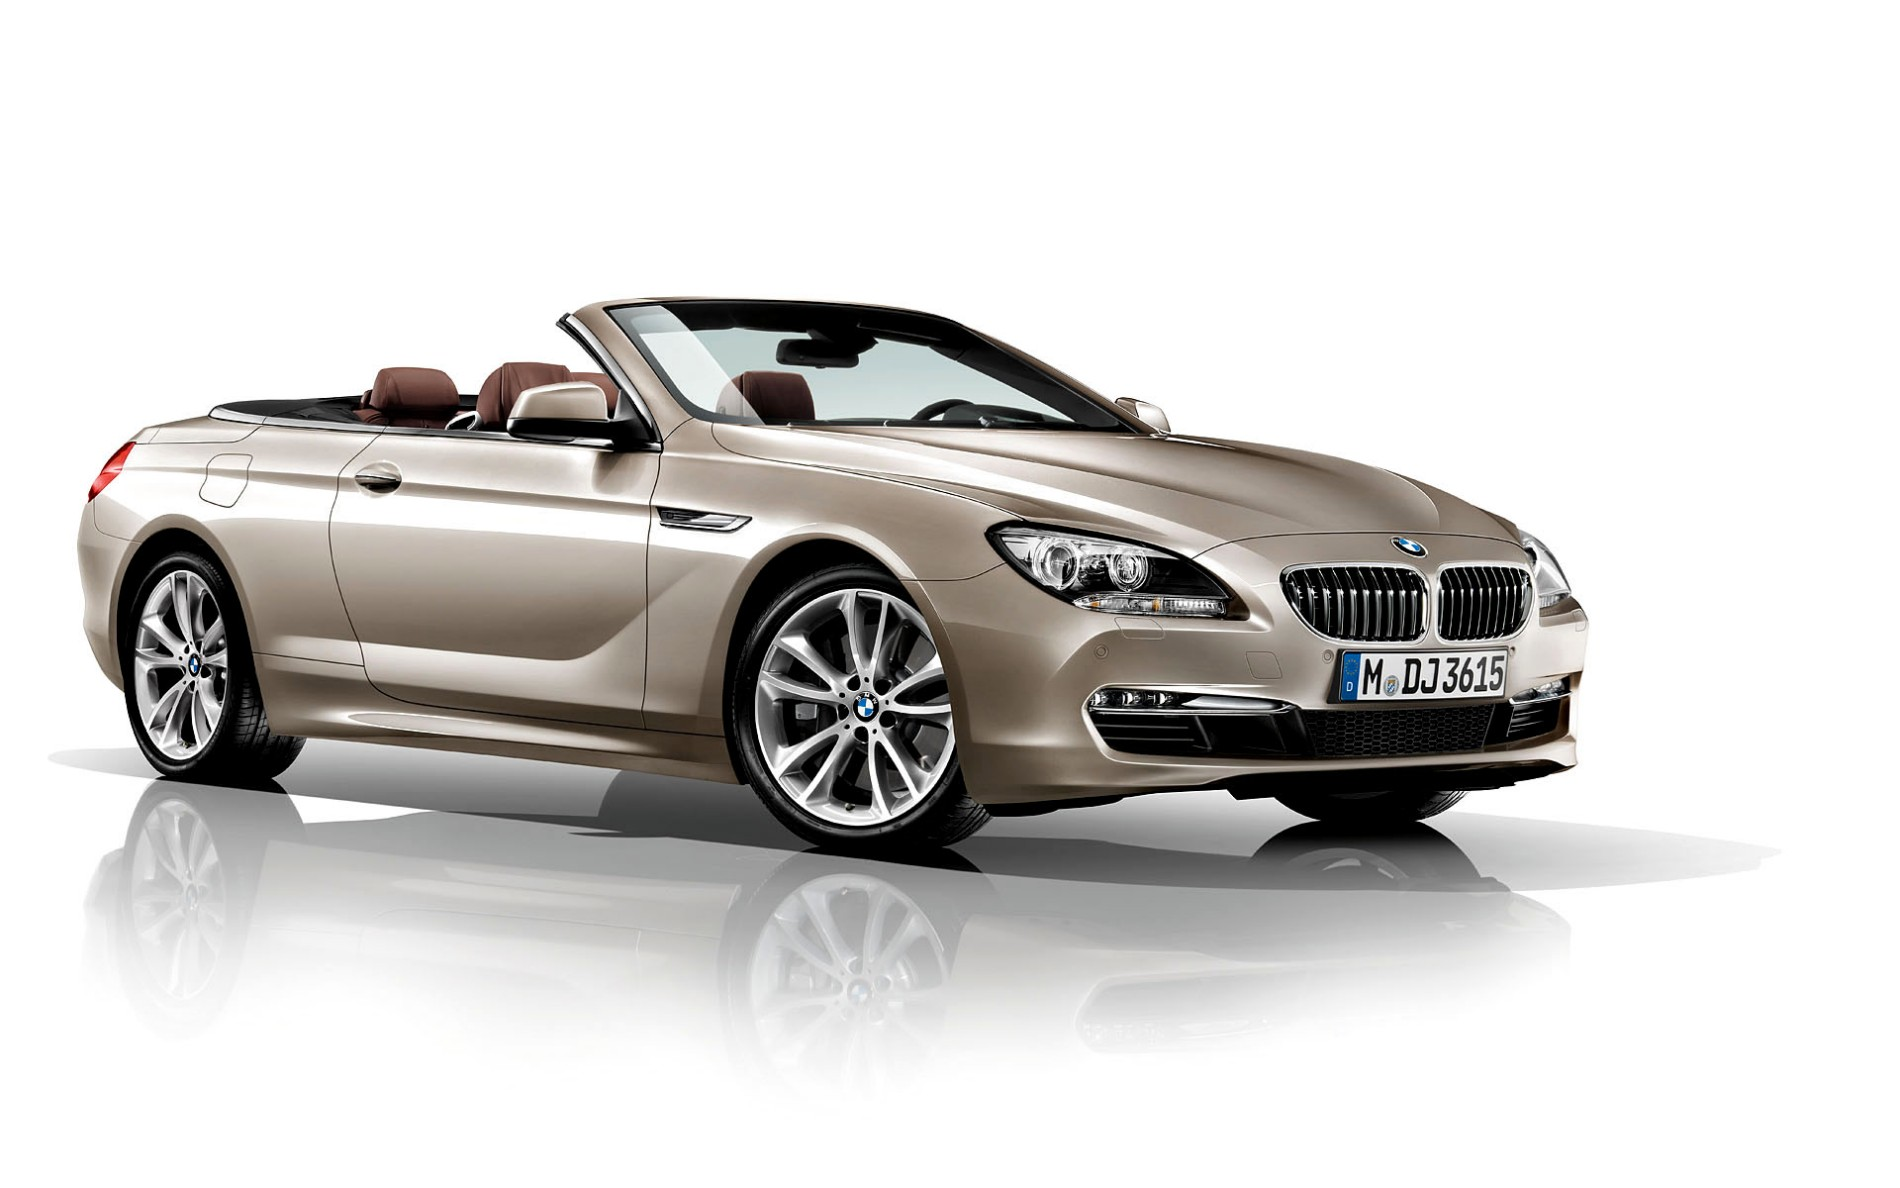 pre owned bmw cars for sale in fort hunt